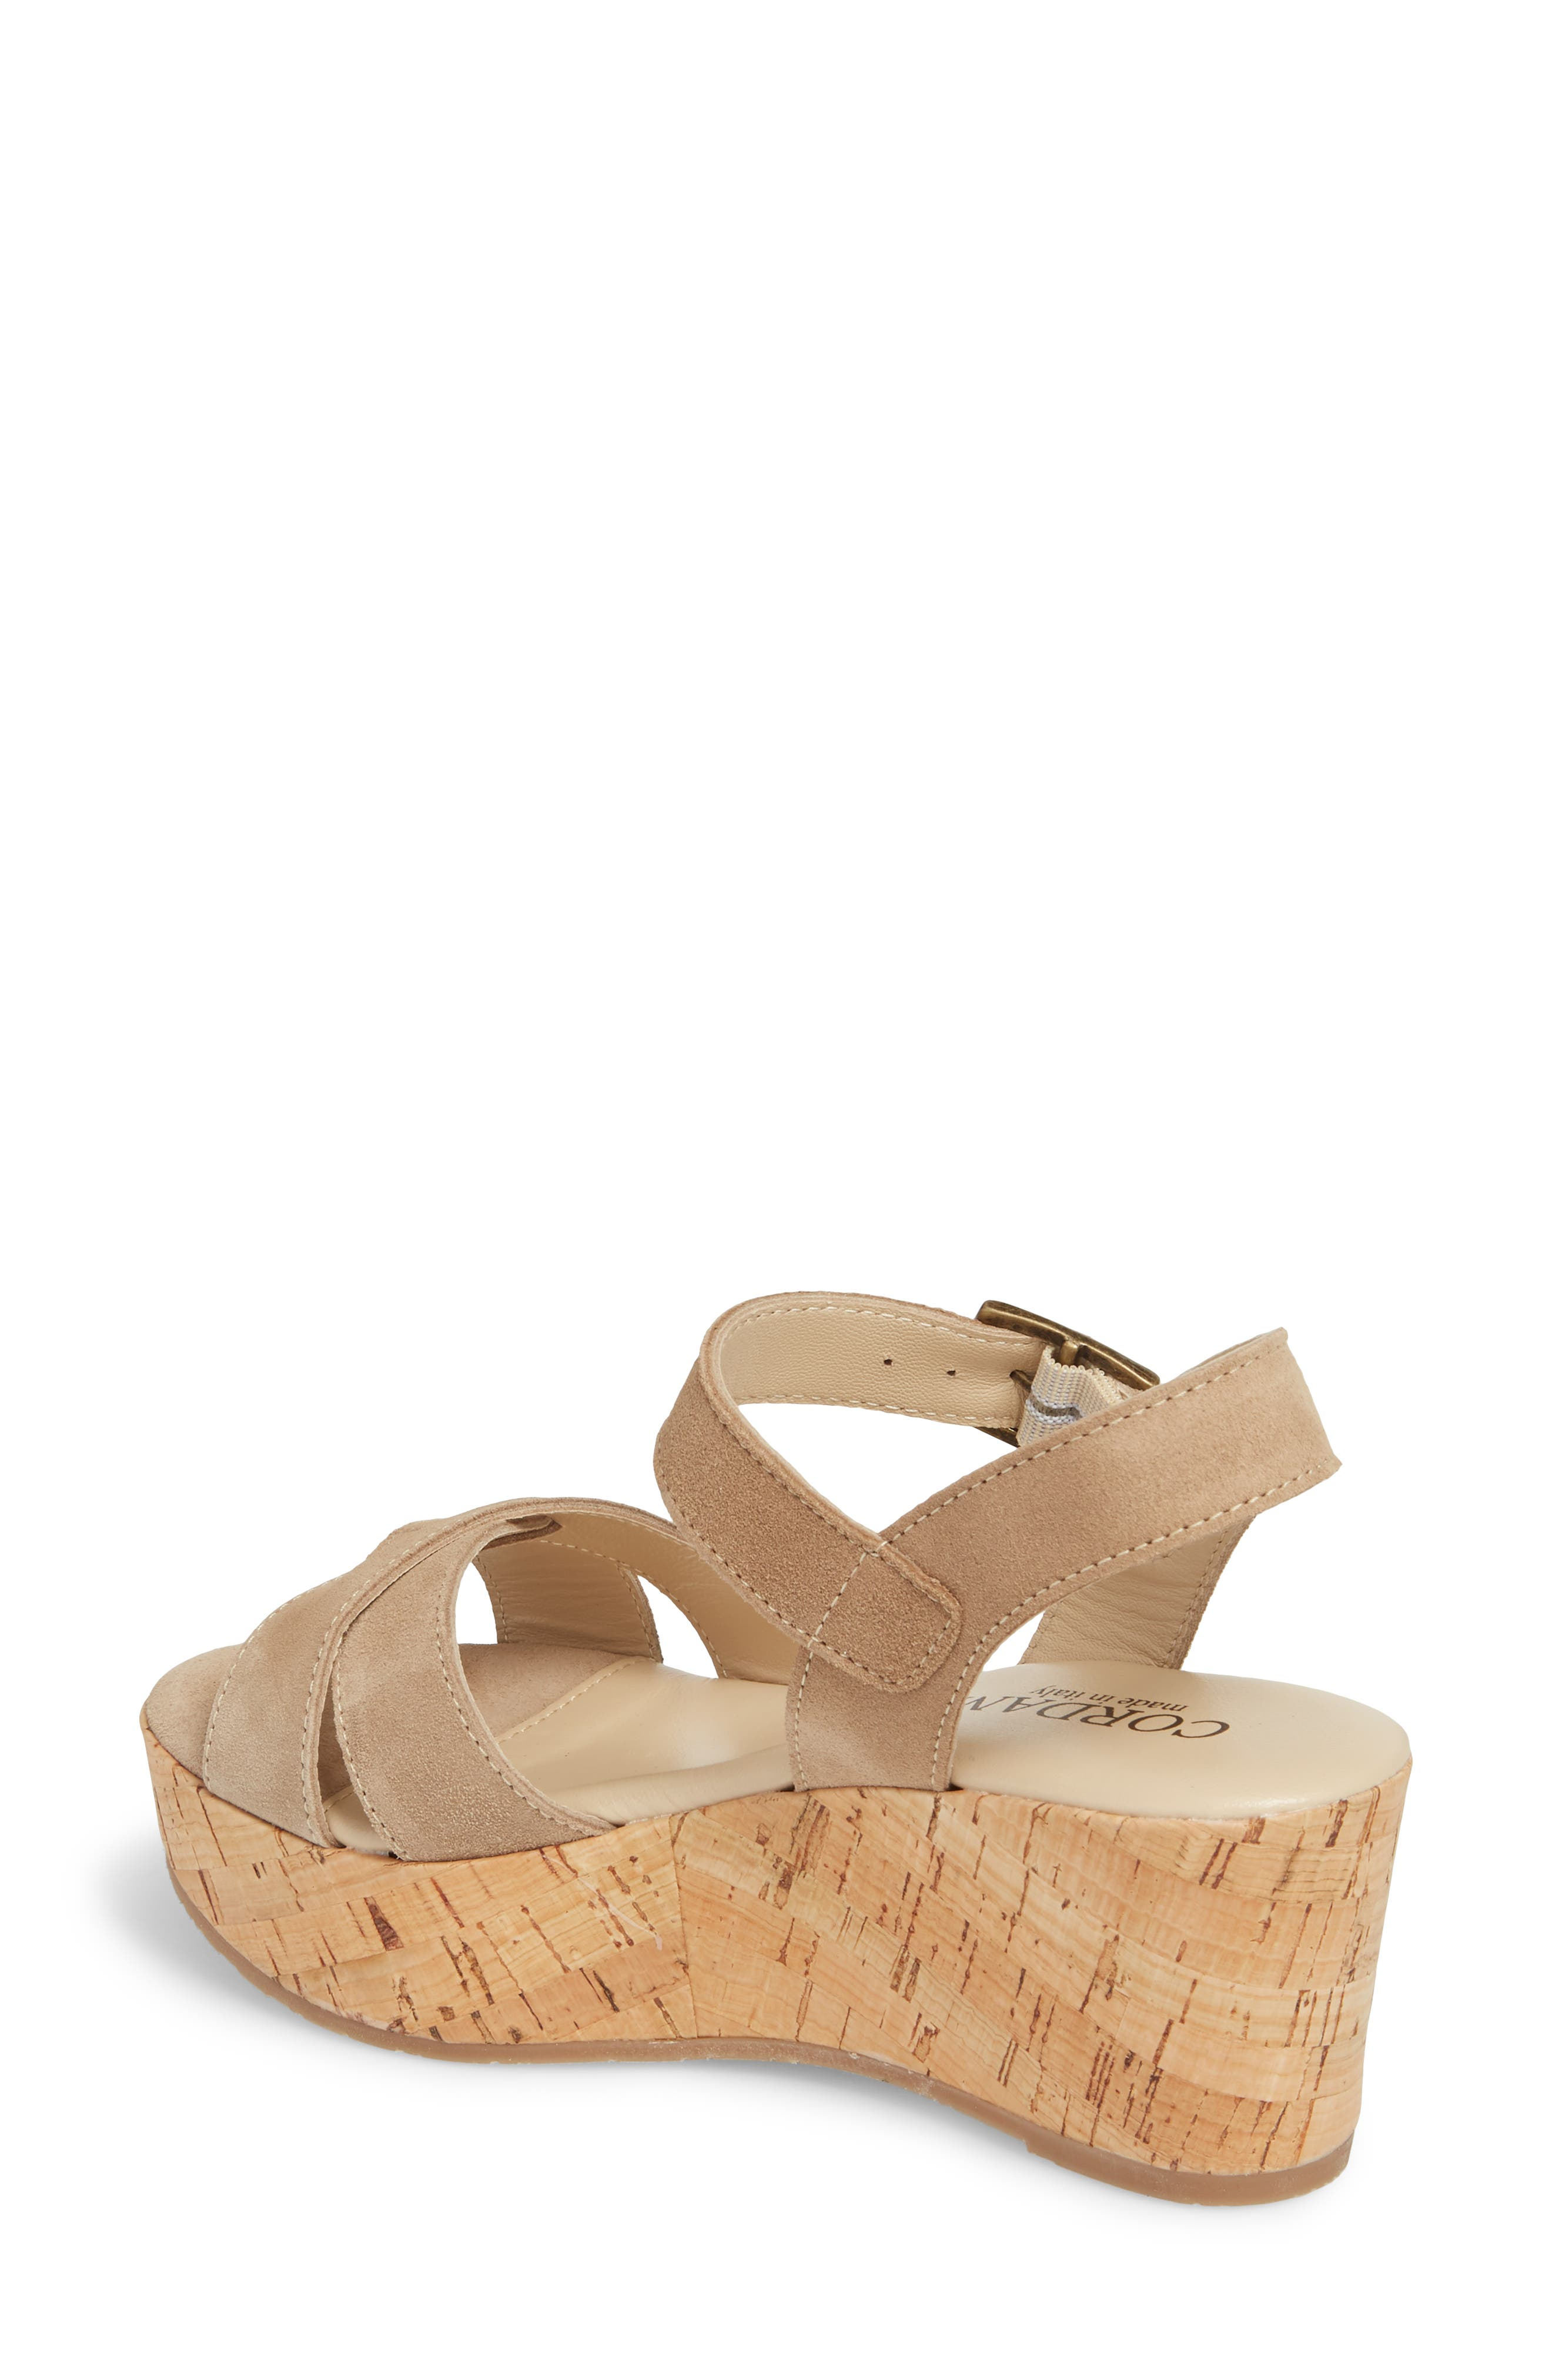 Candy Wedge Sandal,                             Alternate thumbnail 2, color,                             CORDA SUEDE